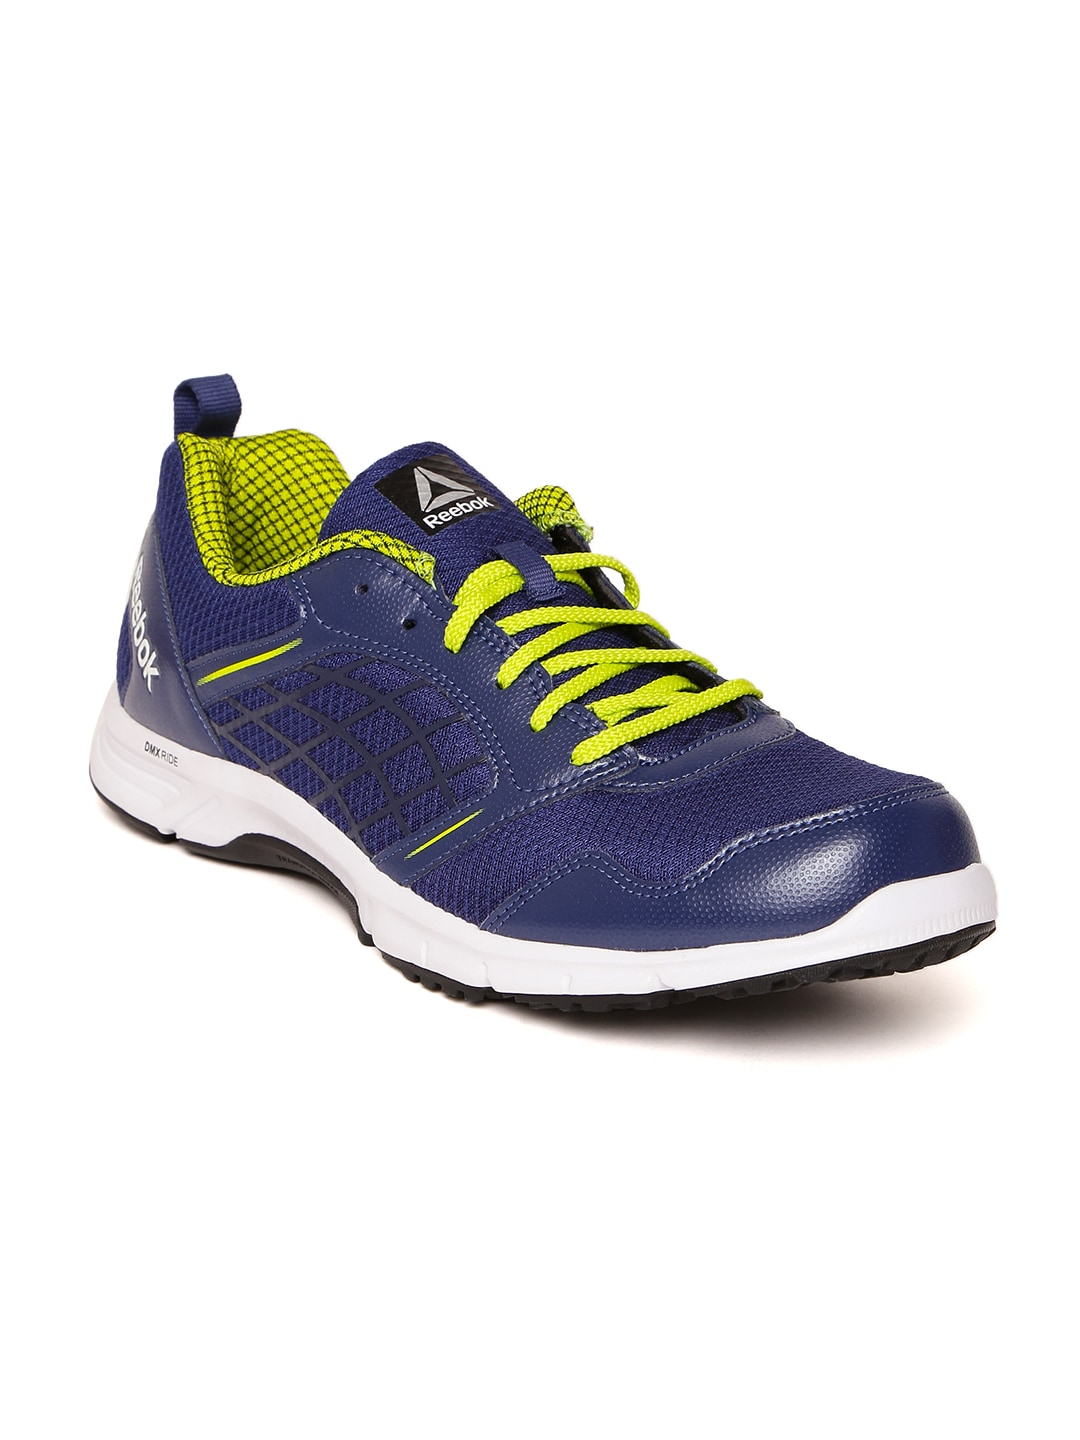 1724c4ff9af Sports Shoes for Men - Buy Men Sports Shoes Online in India - Myntra